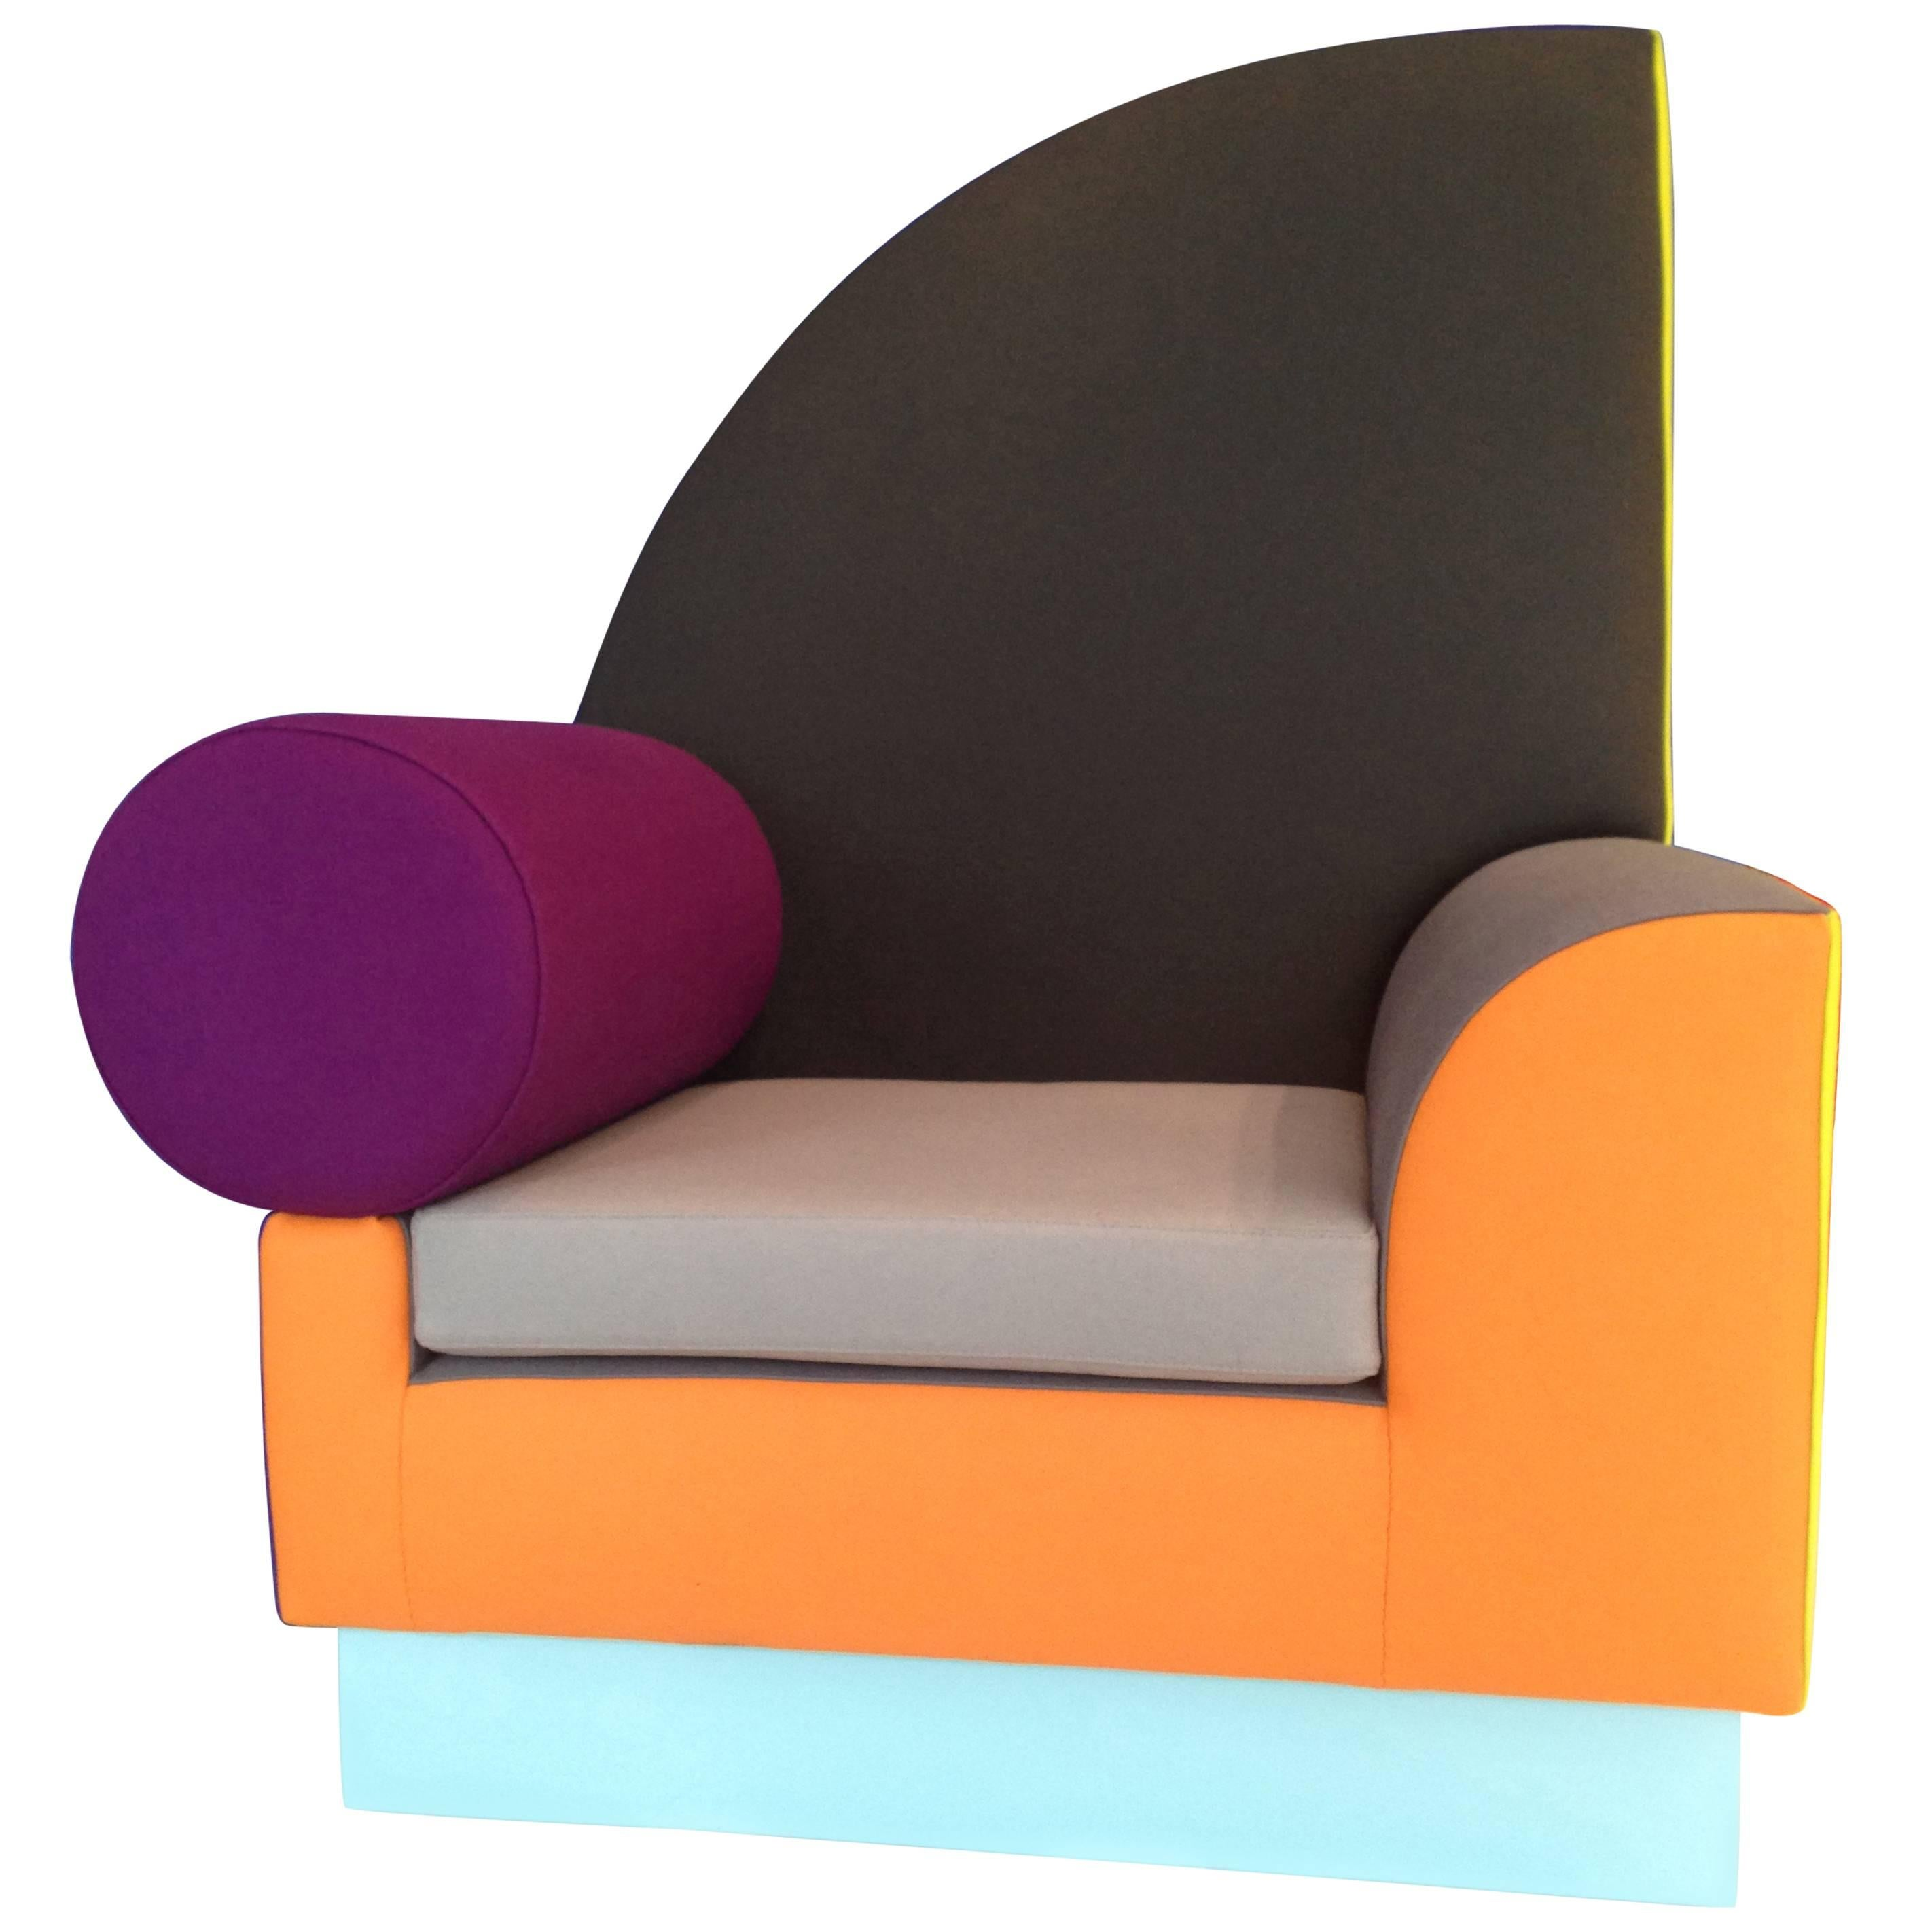 Bel Air Armchair by Peter Shire